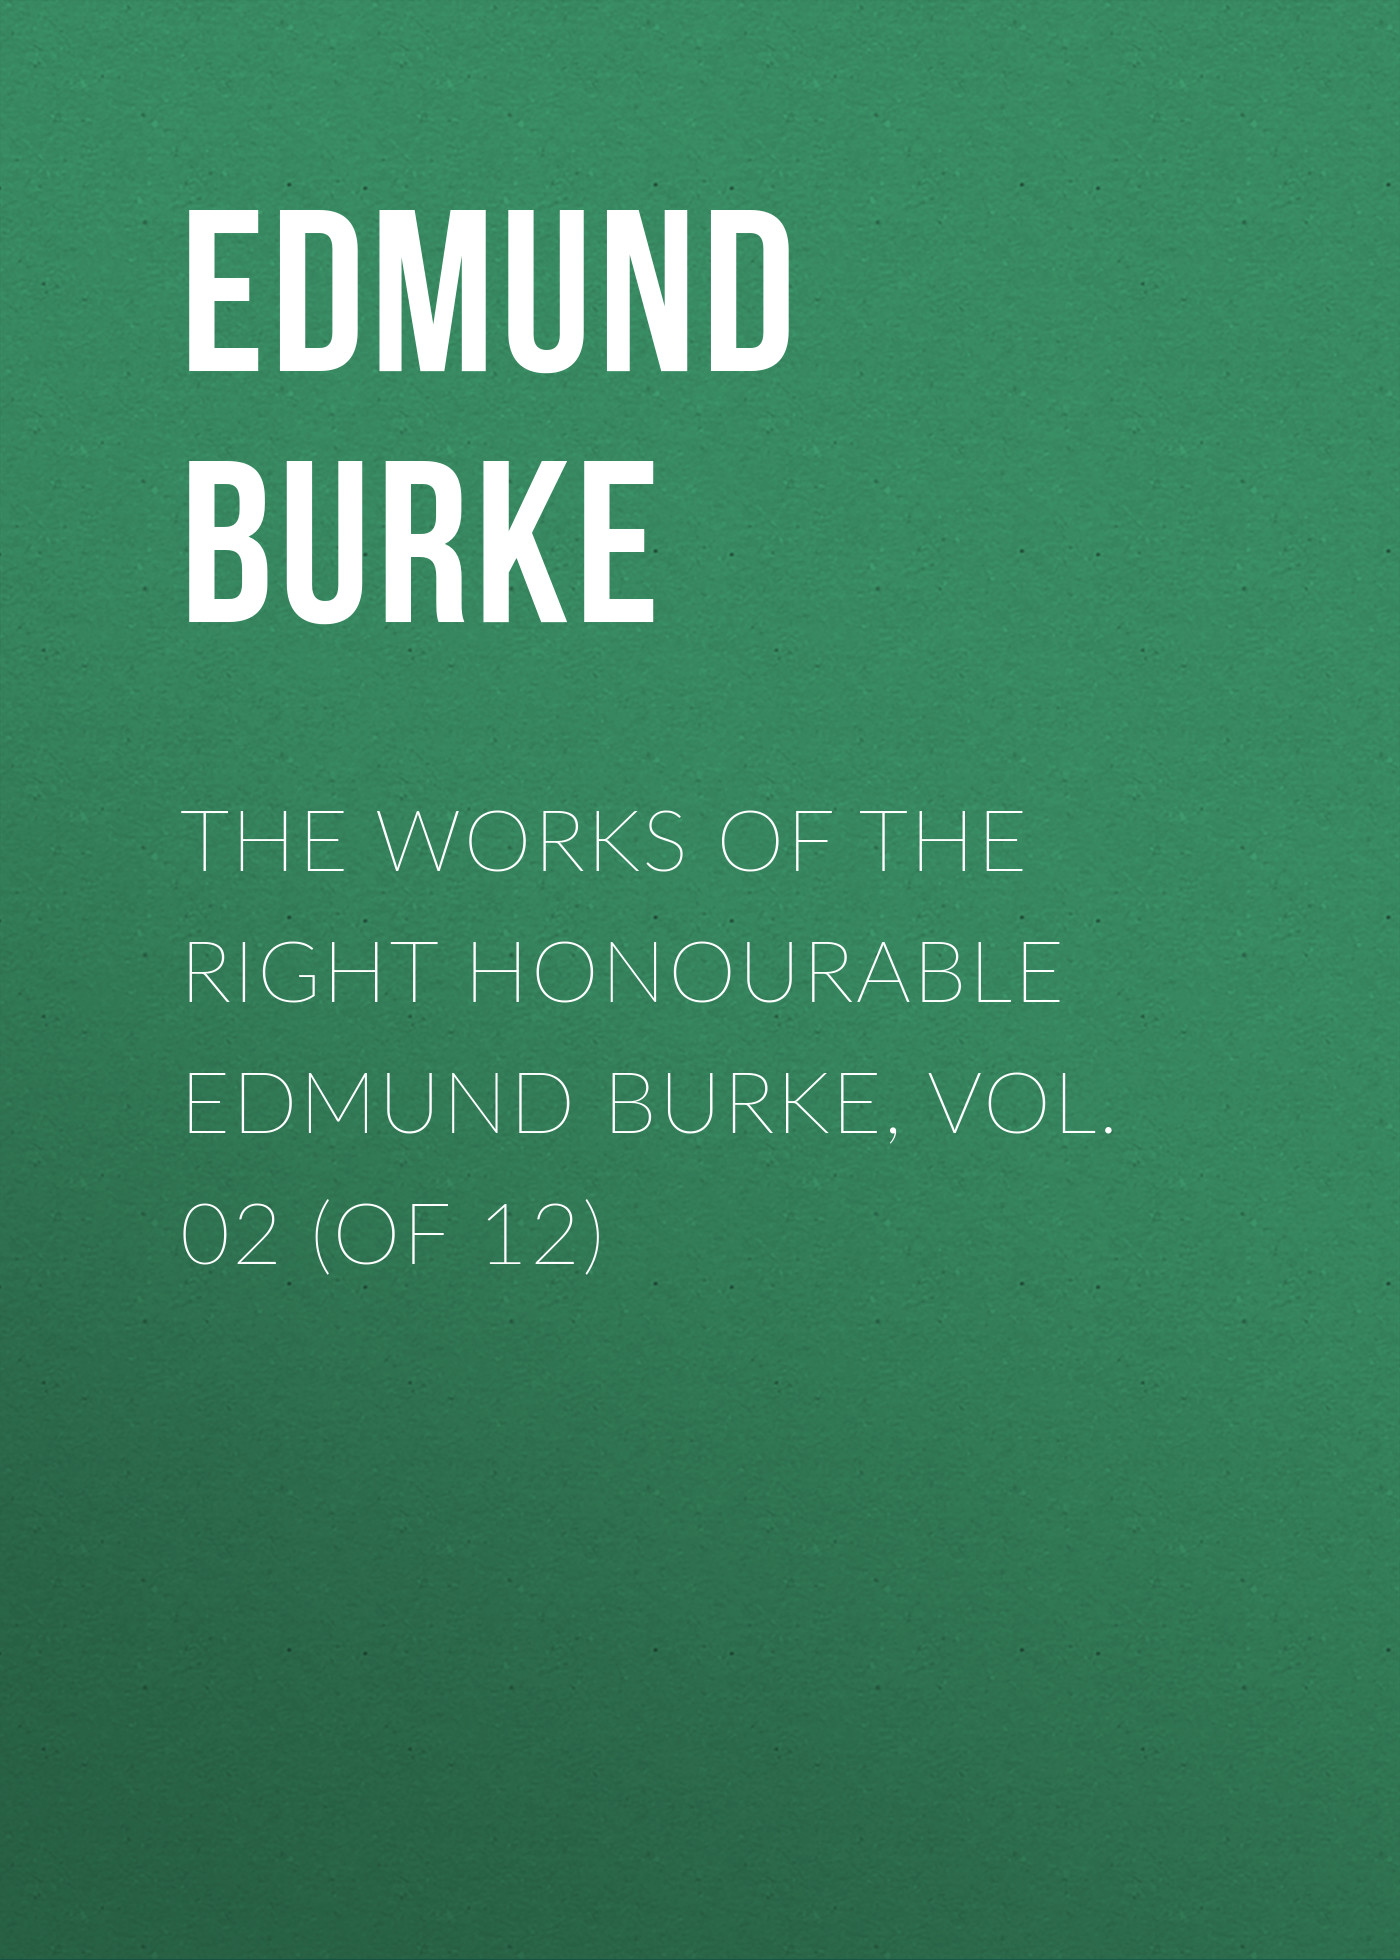 Edmund Burke The Works of the Right Honourable Edmund Burke, Vol. 02 (of 12) burke edmund the speeches of the right honourable edmund burke on the impeachment of warren hastings